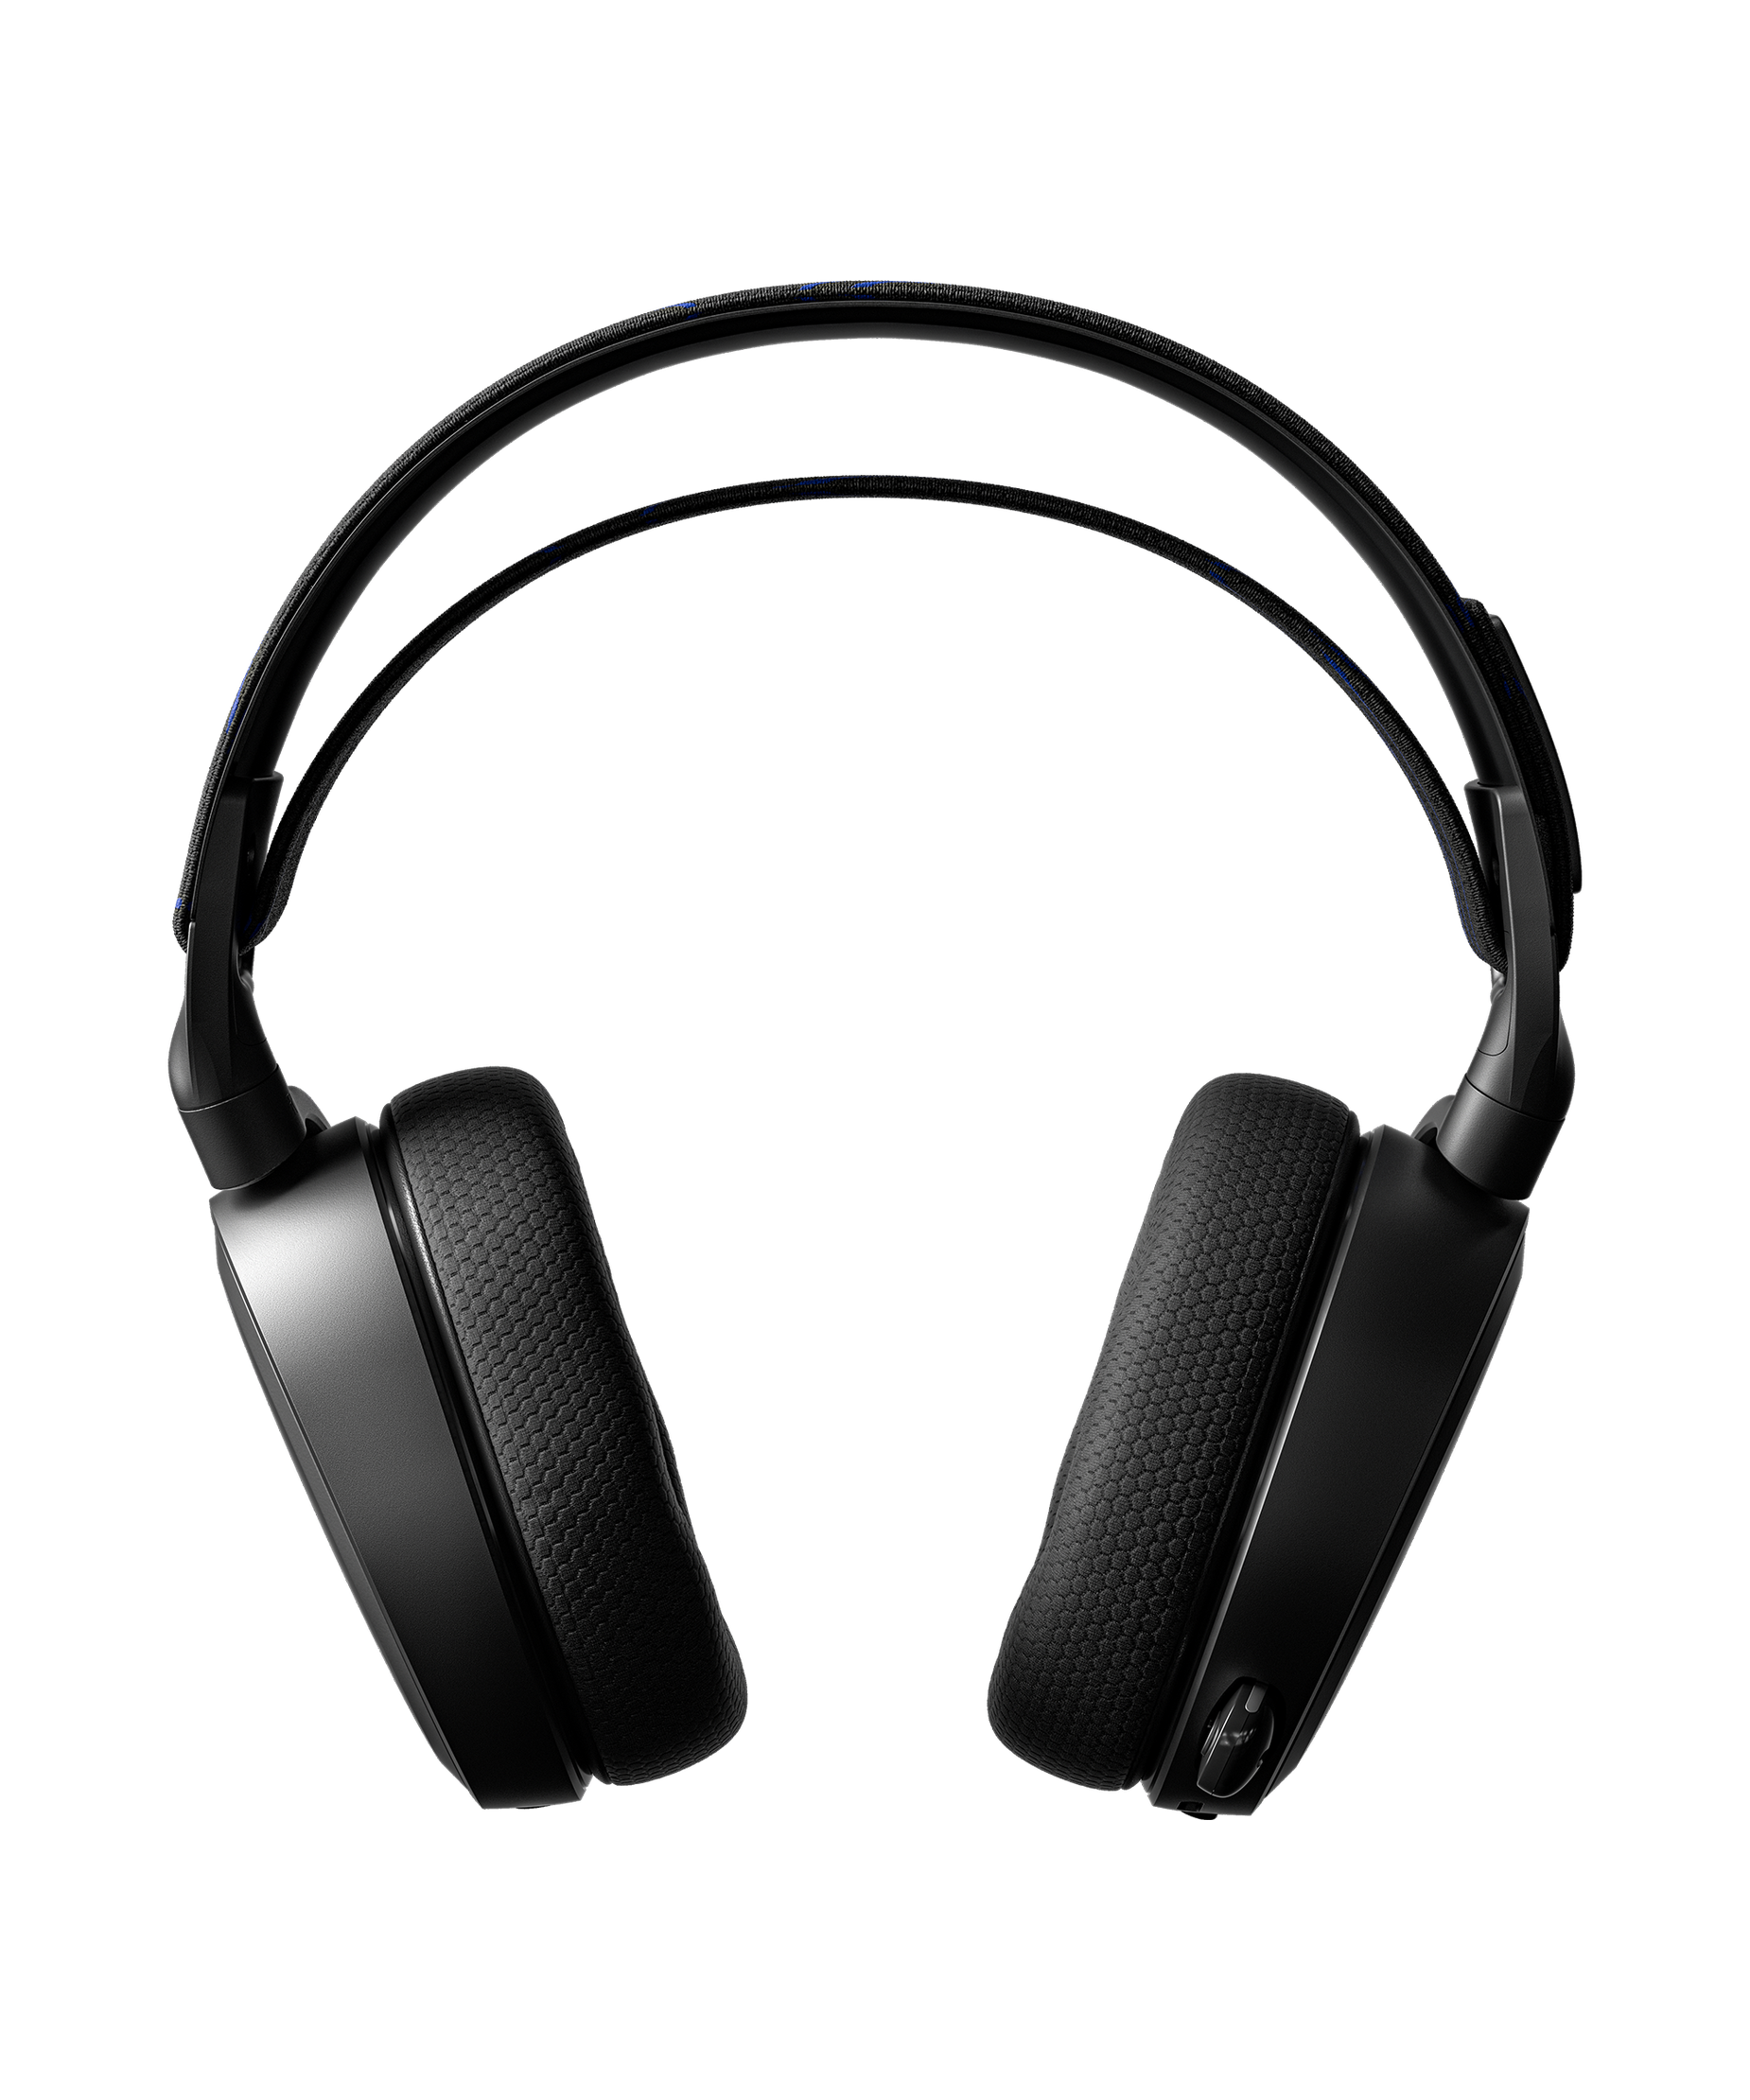 Frontal product render of the Arctis 7P headset